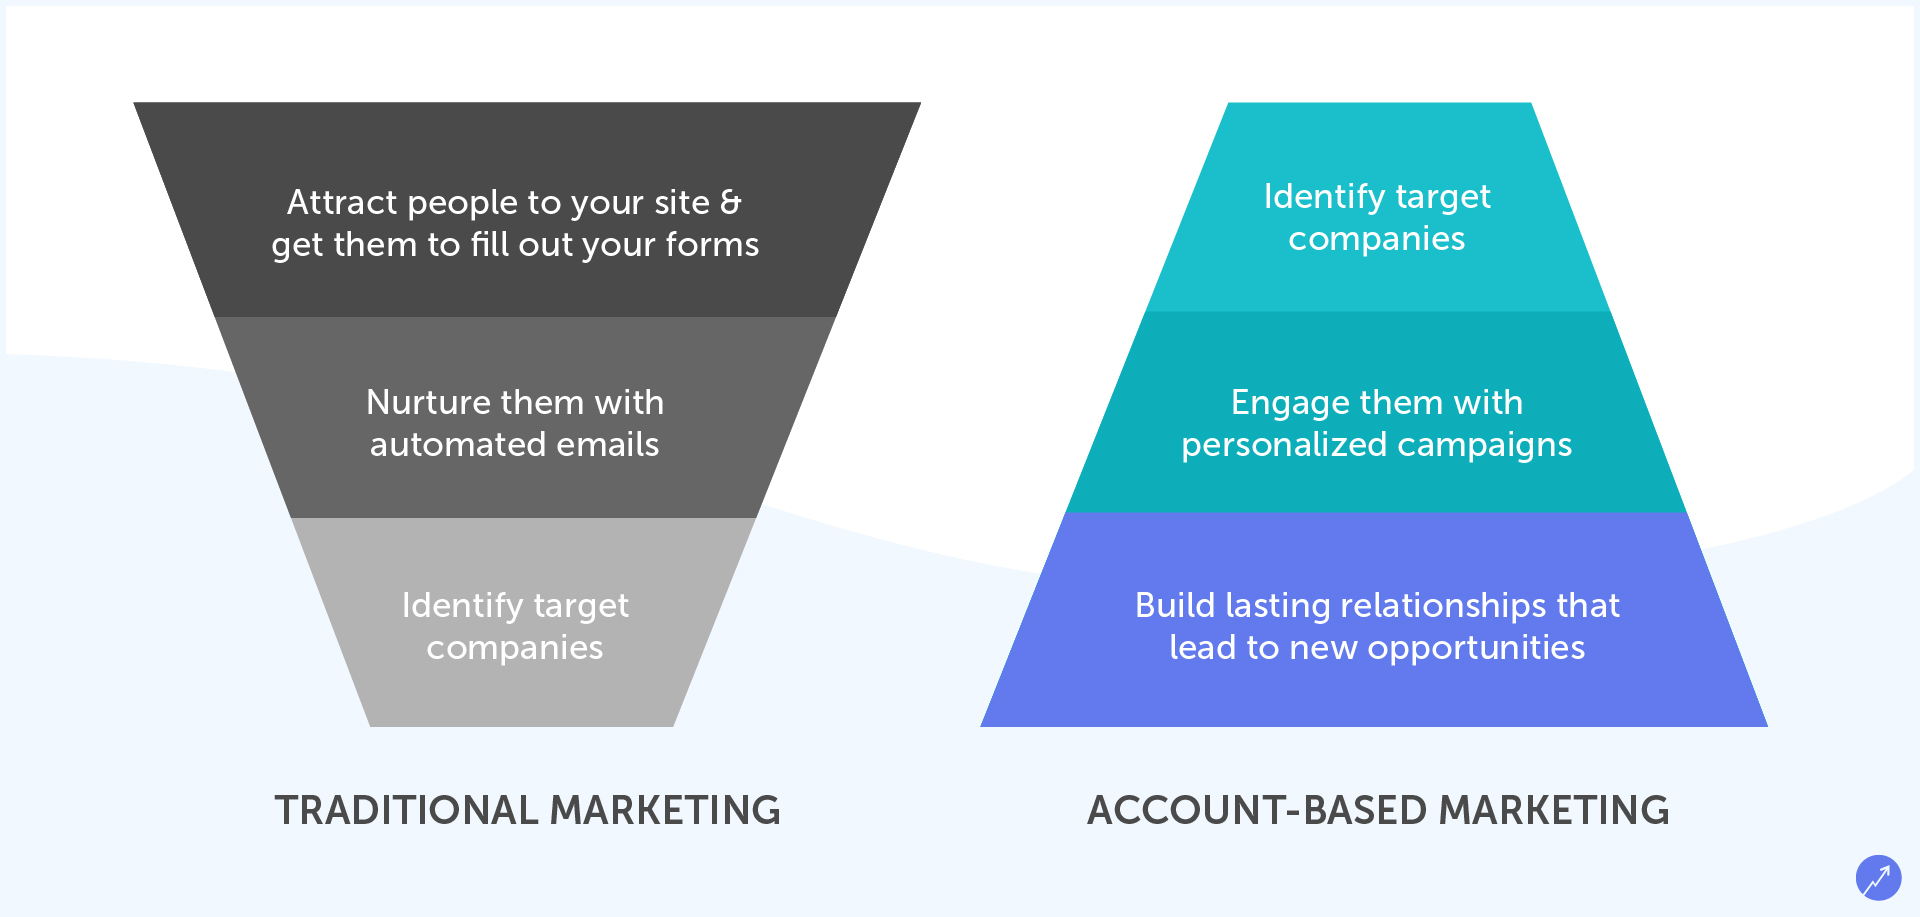 Account-Based Marketing (ABM) - A Detailed Guide for B2B Companies